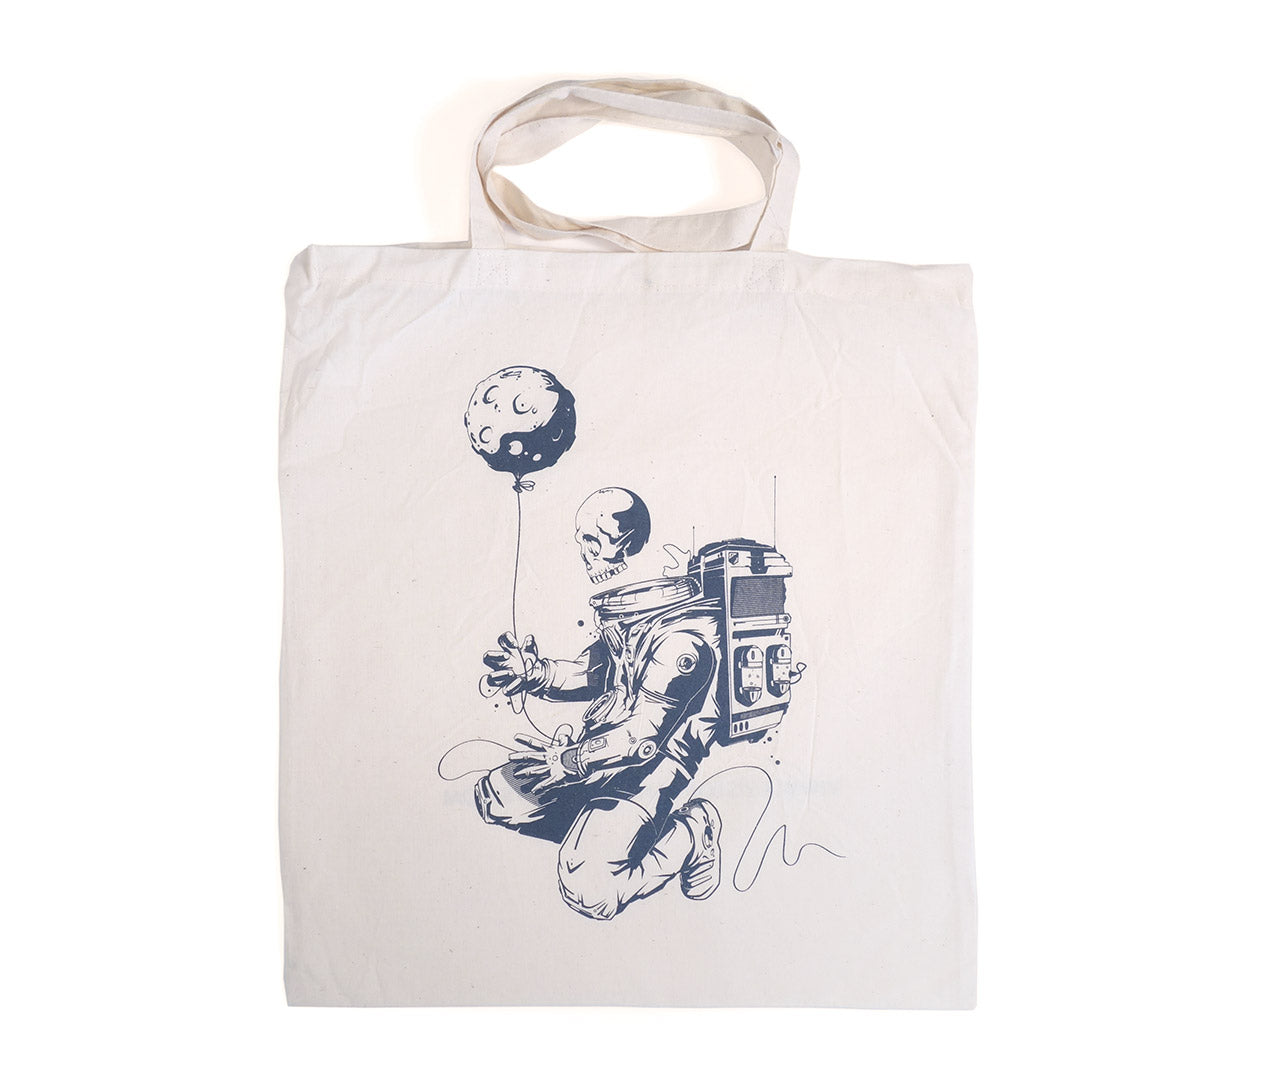 Tangled up in space Totebag